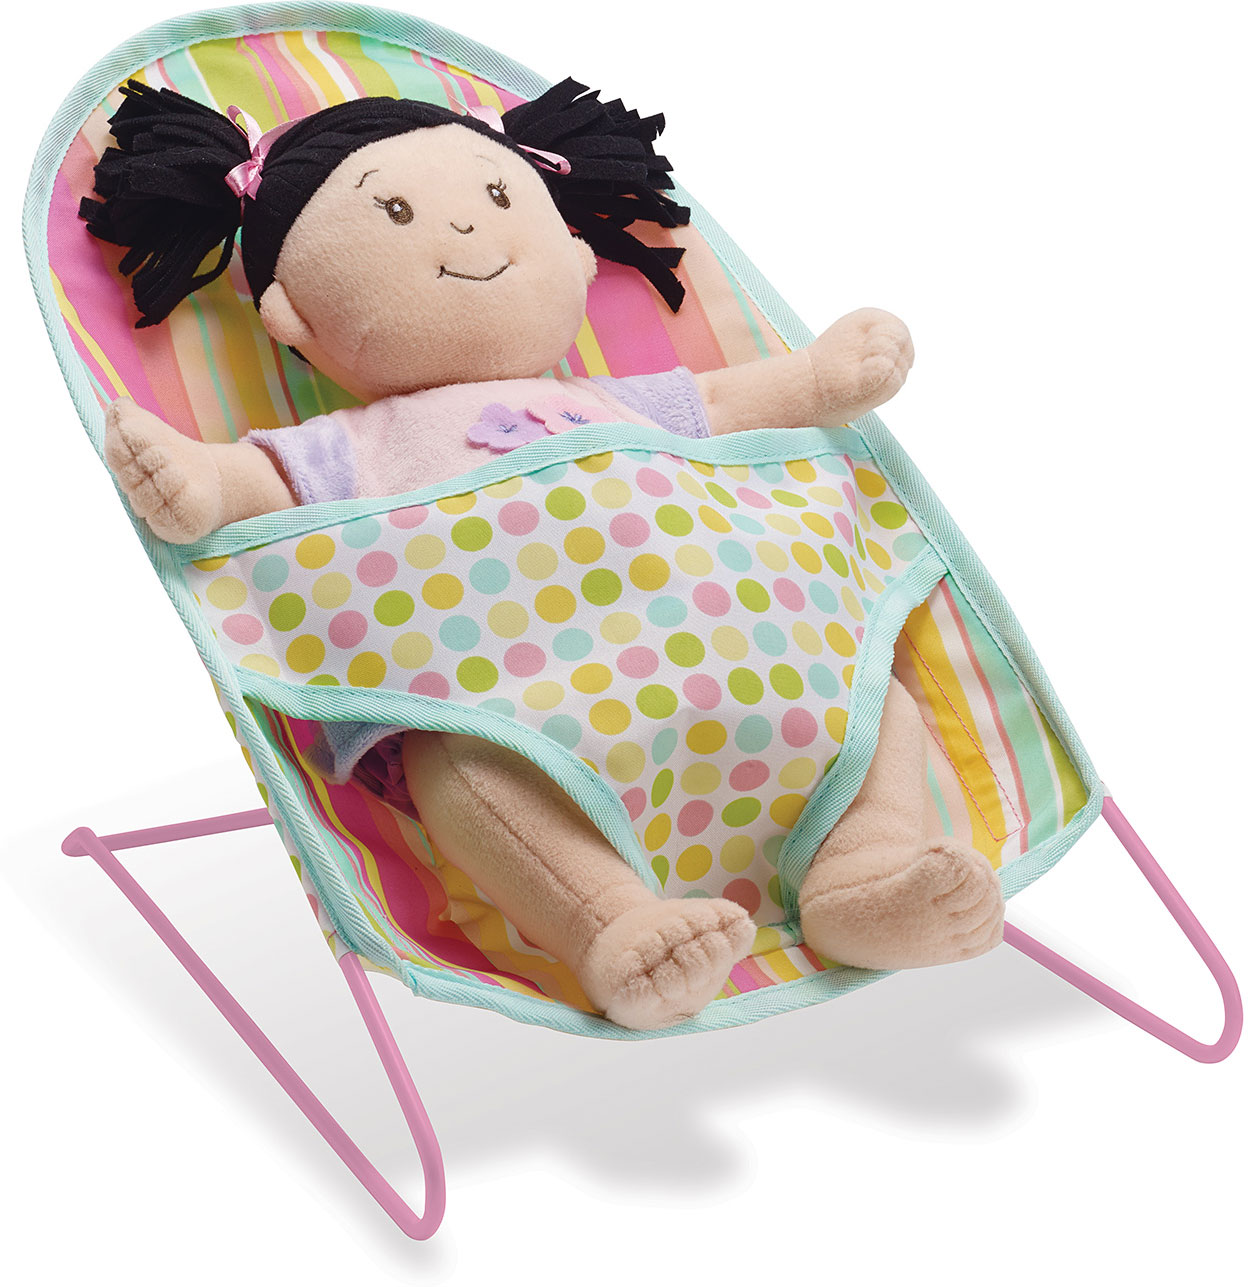 Bouncy Chair Baby Stella Bouncy Chair On Classic Toys Toydango